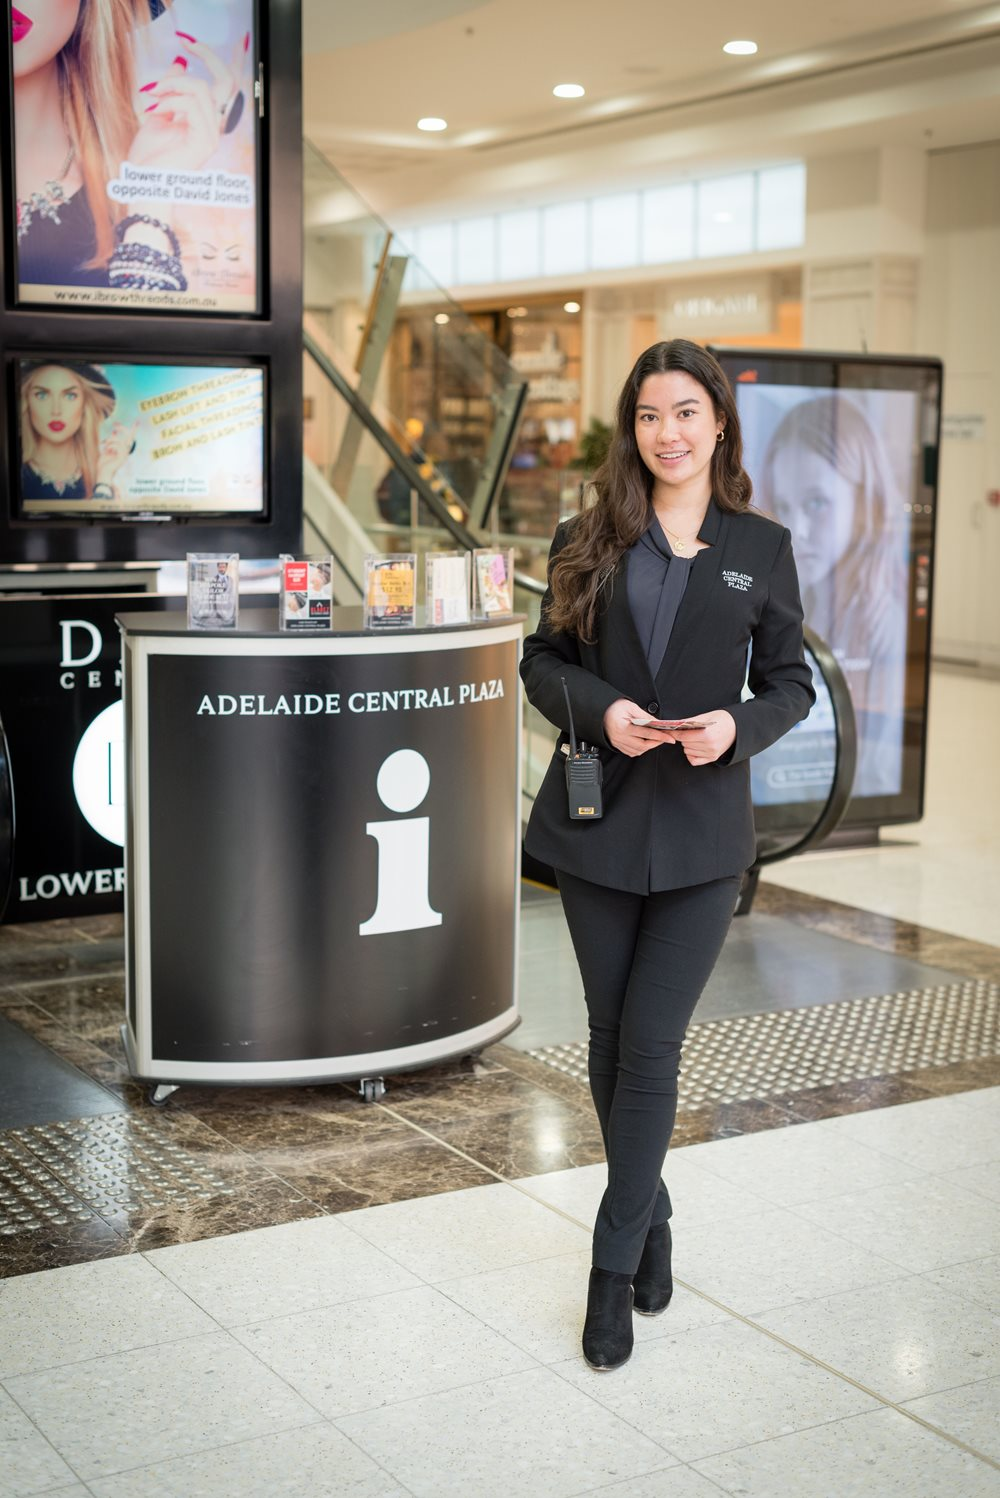 Adelaide Central Plaza Concierge